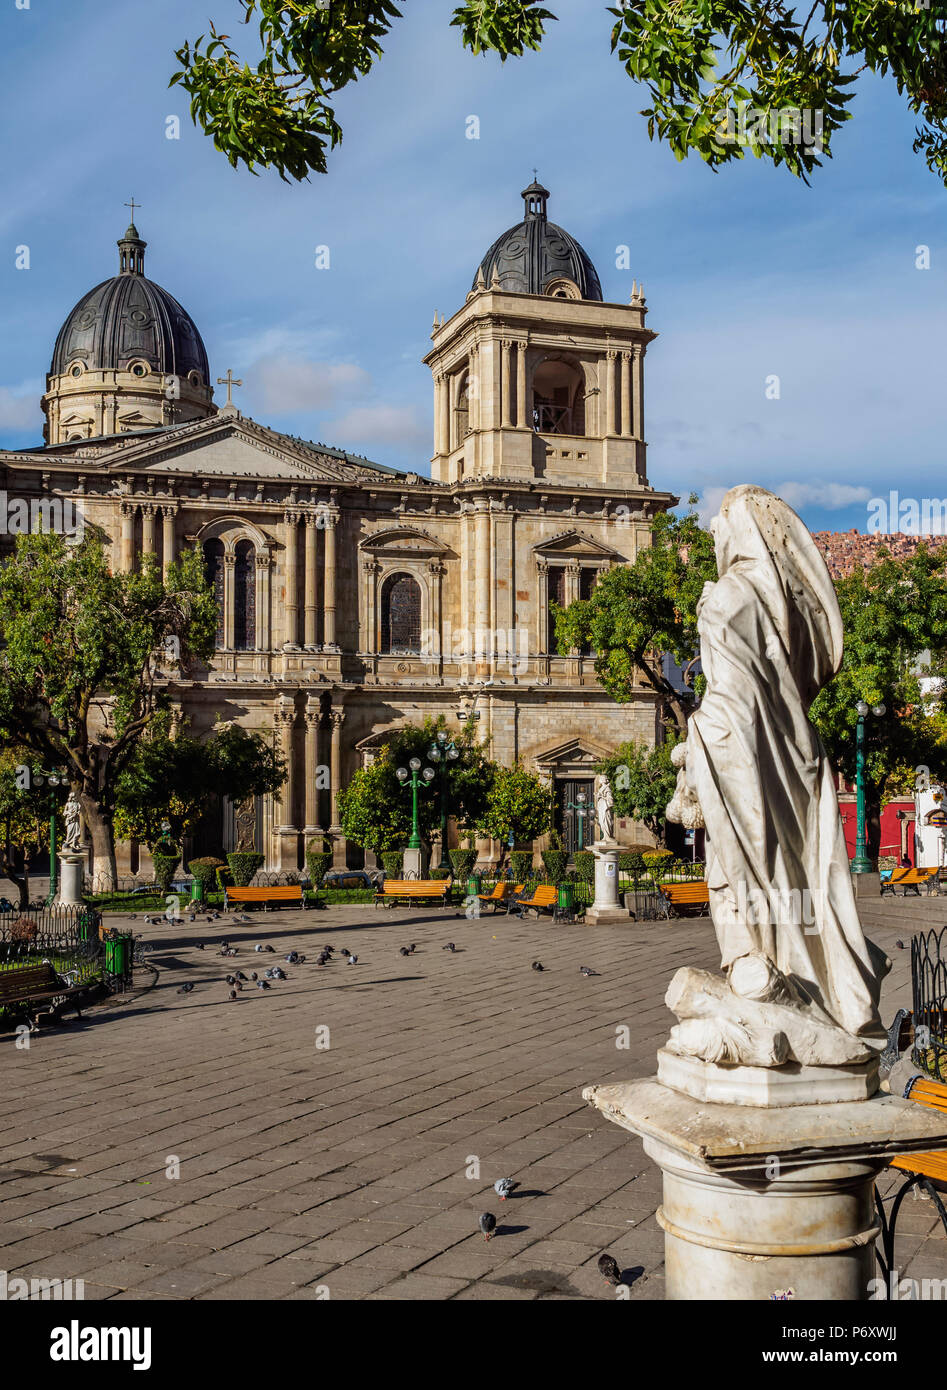 Plaza Murillo with Cathedral Basilica of Our Lady of Peace, La Paz, Bolivia - Stock Image